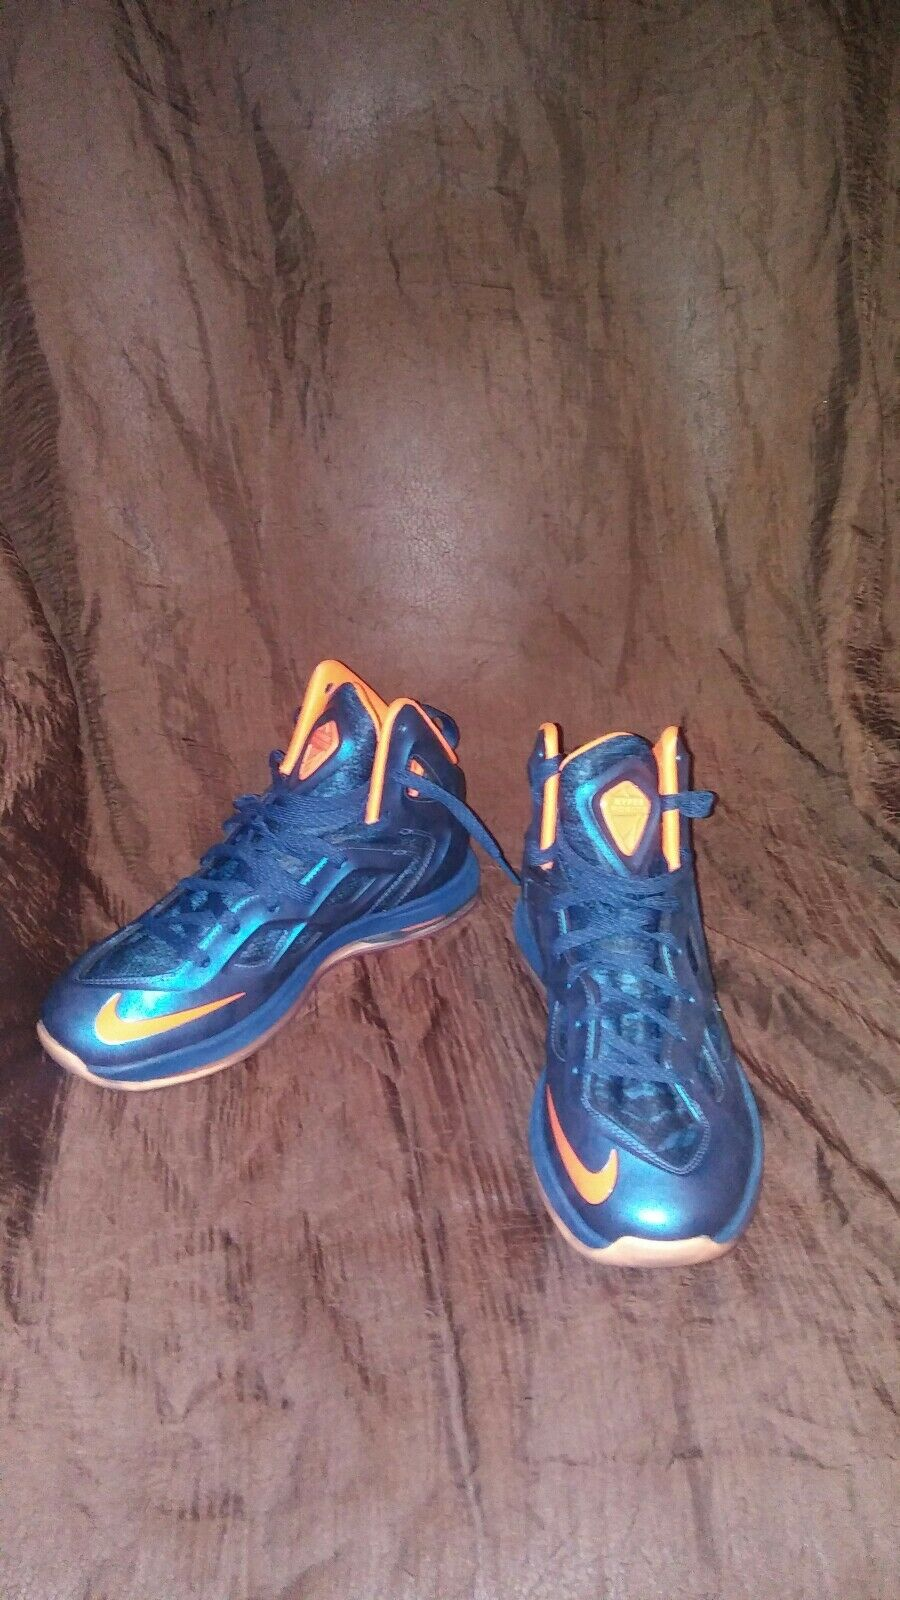 NEW MEN'S SIZE 9.5 Nike HYPERPOSITE Shoes